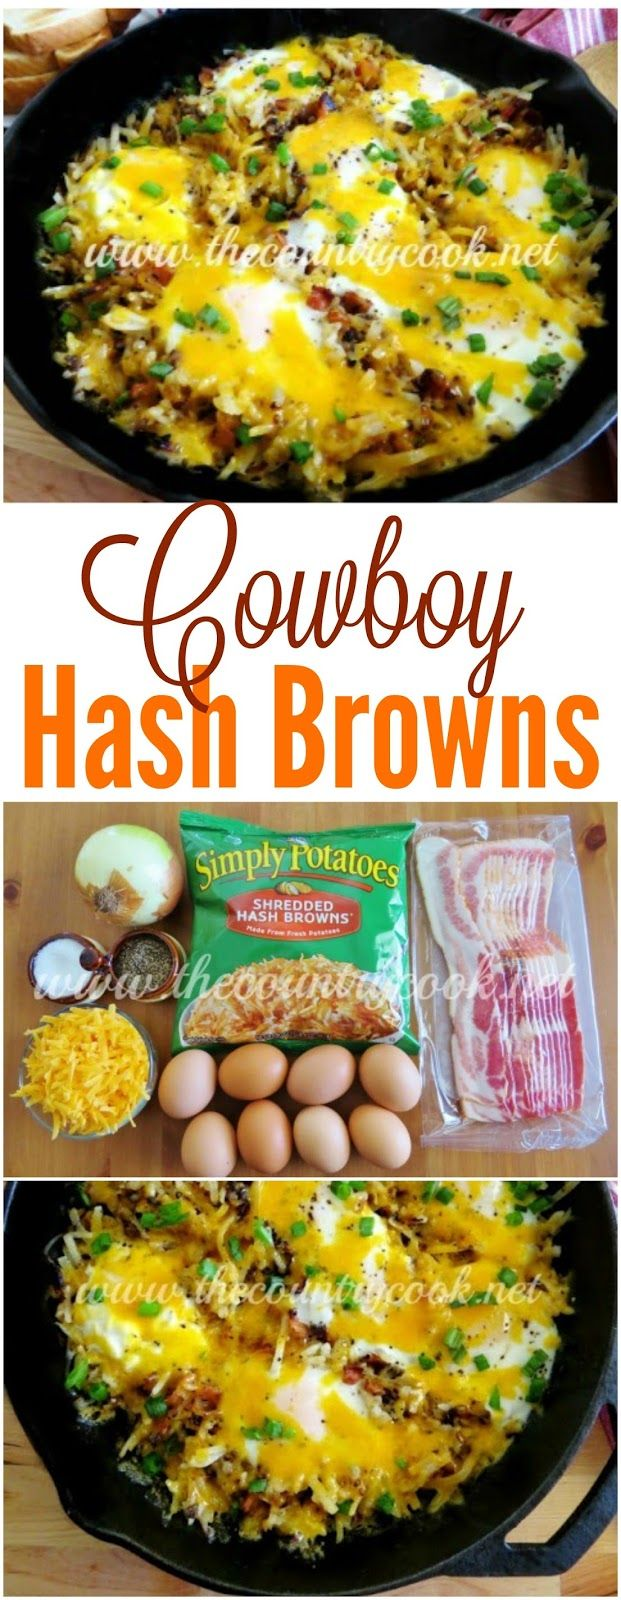 Cowboy Hashbrown Skillet recipe from The Country Cook